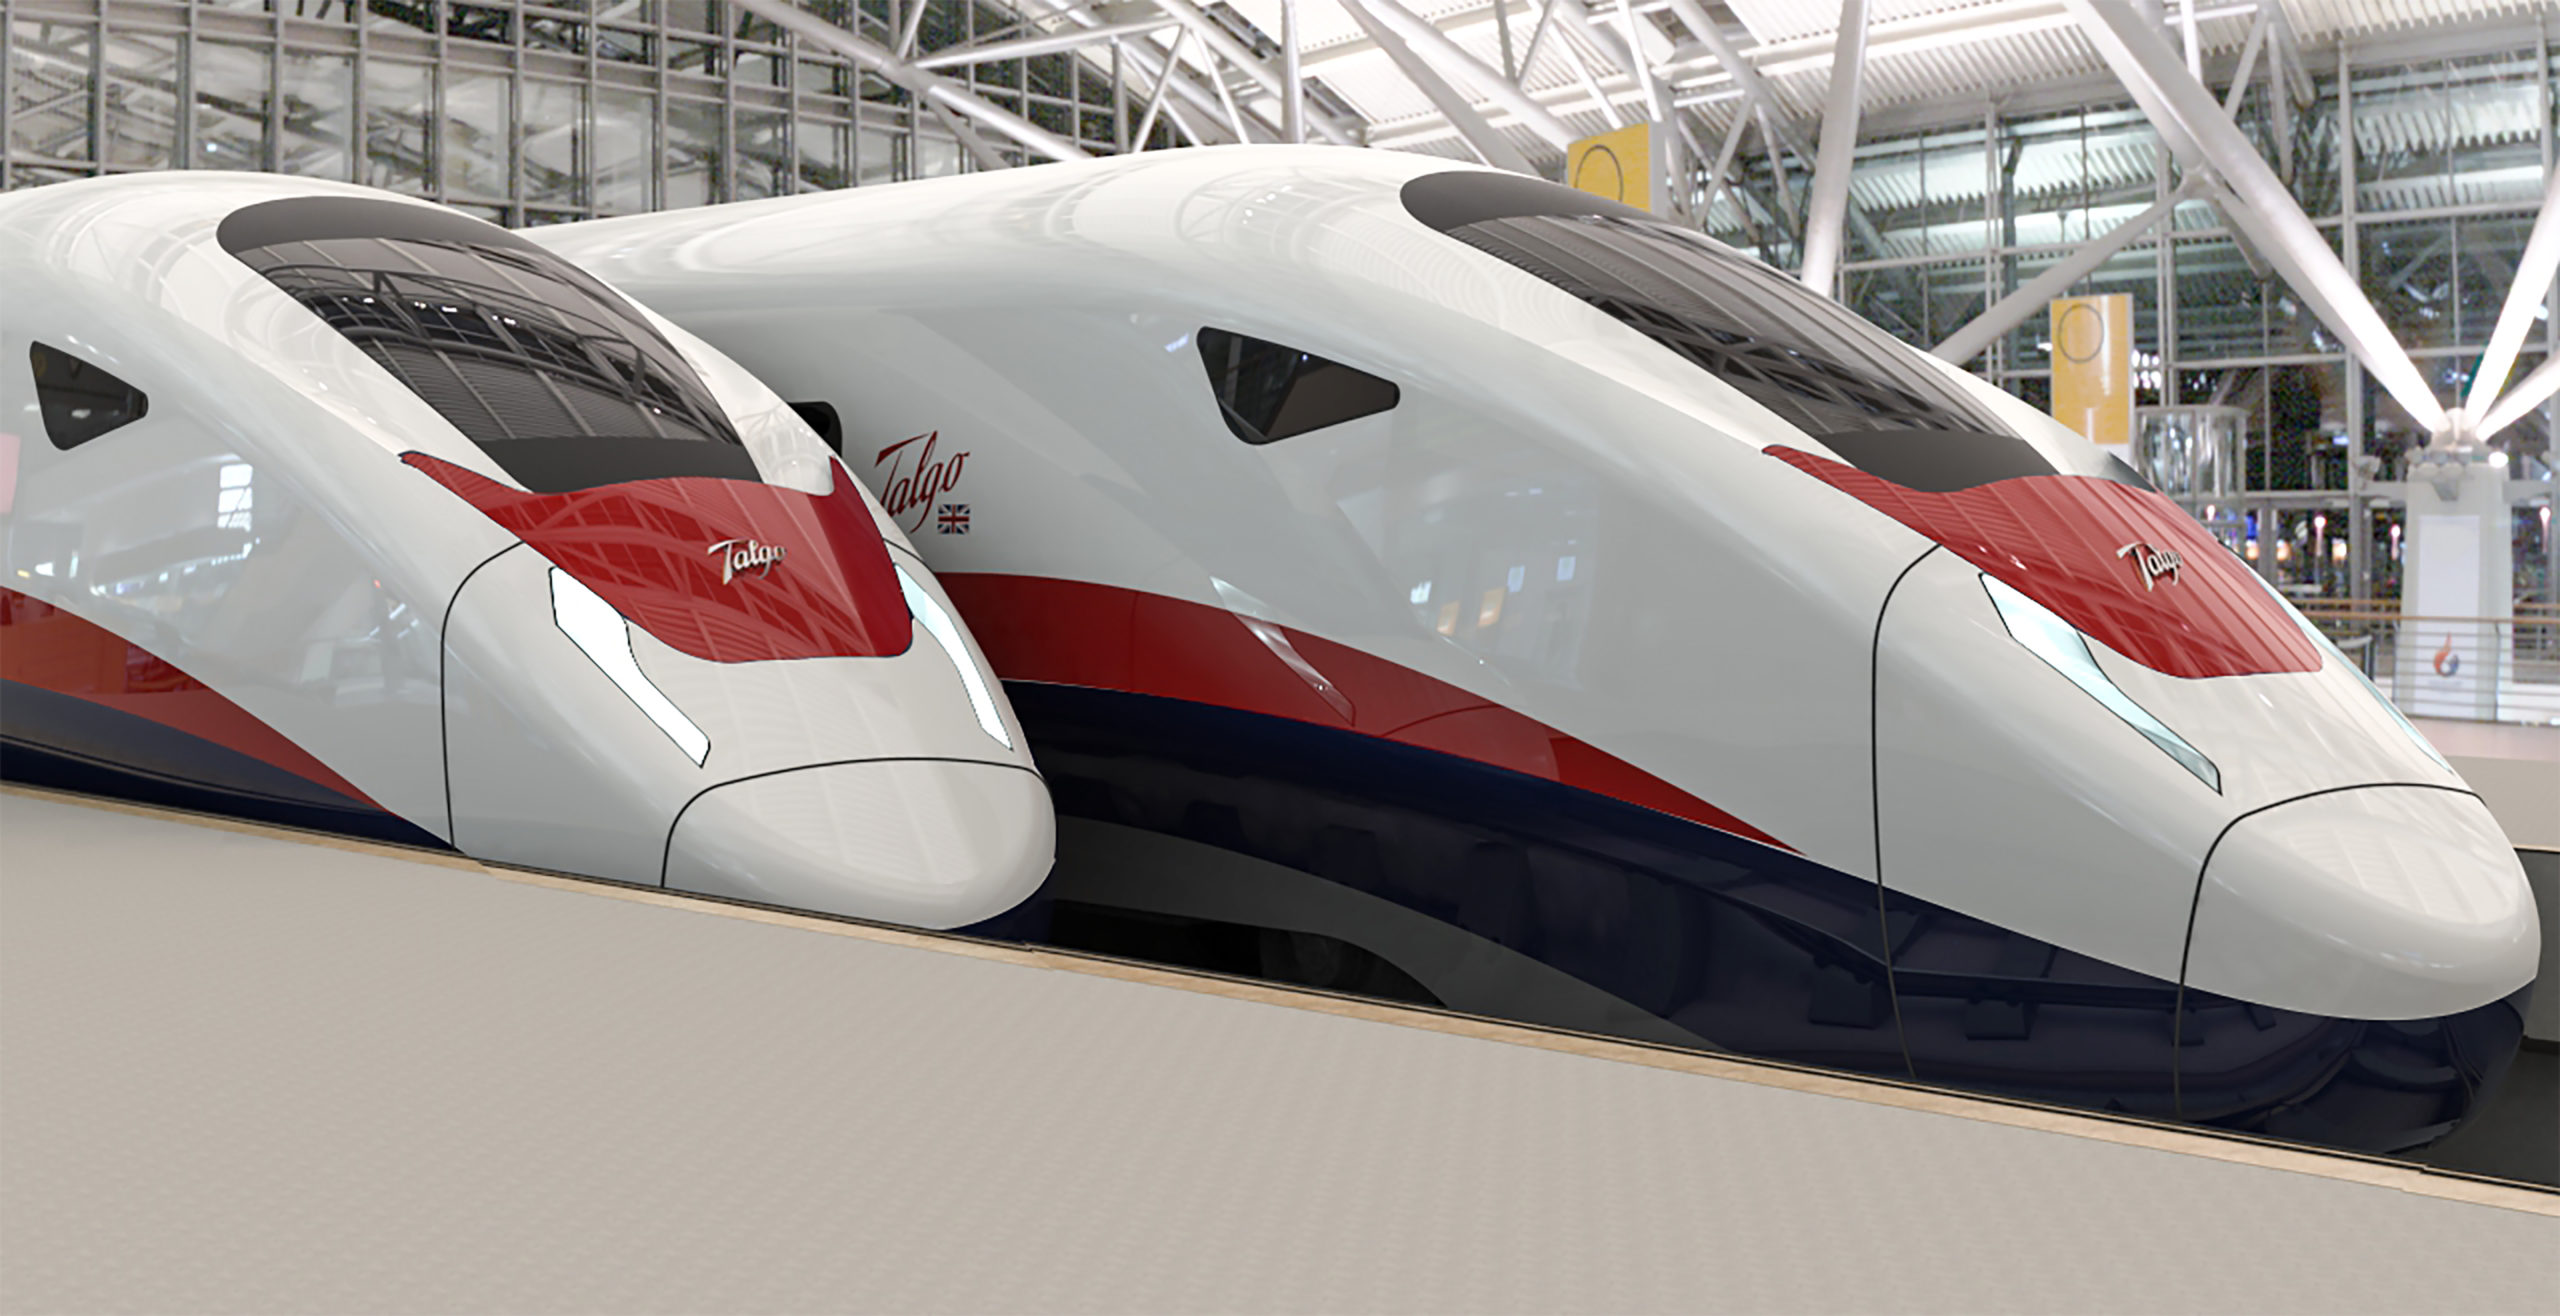 Fife MP Douglas Chapman thinks Talgo's proposed manufacturing plant at Longannet could help achieve net-zero carbon objectives.